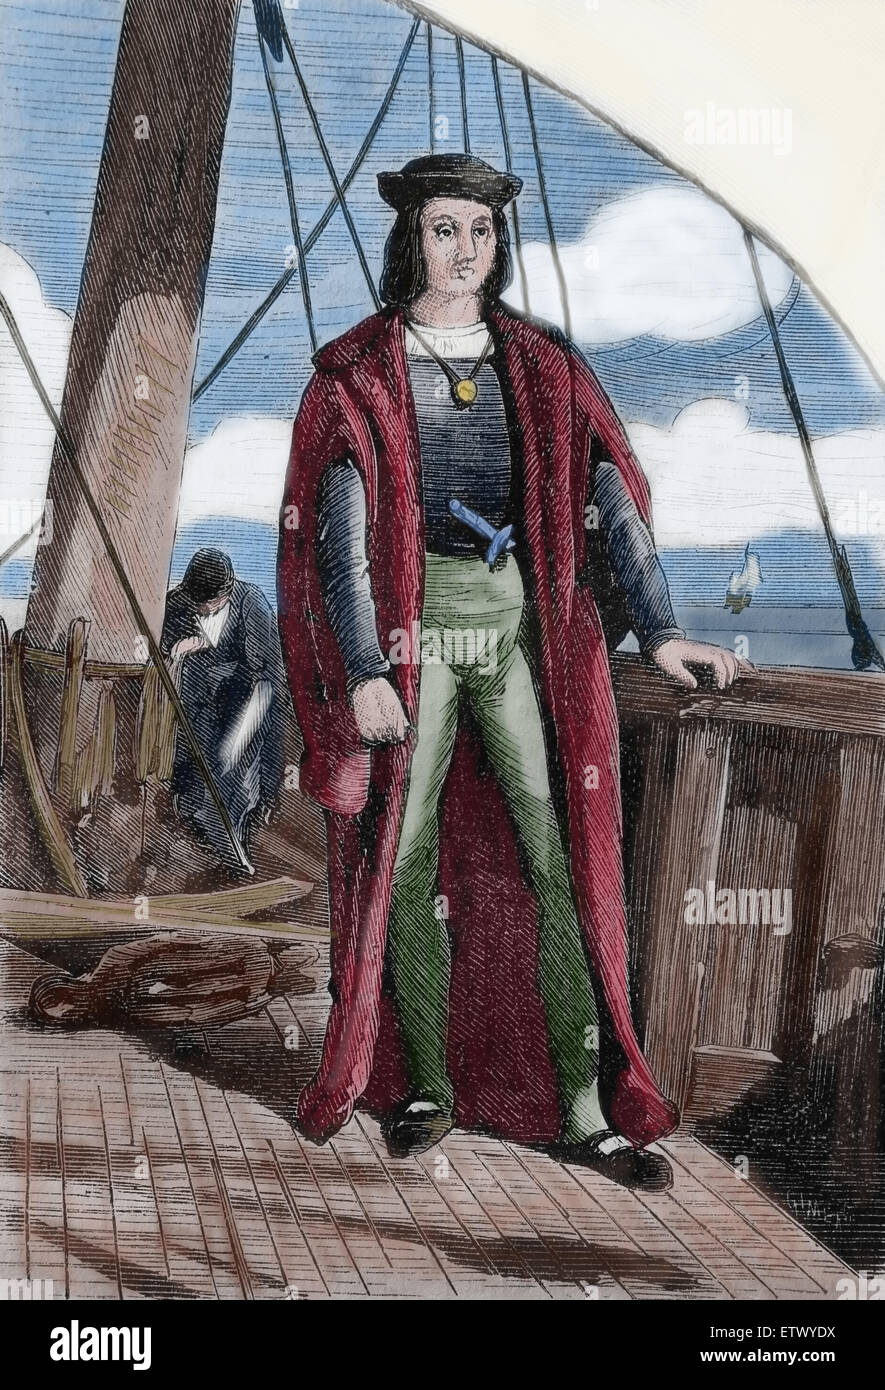 Christopher Columbus (1450-1506). Explorer, navigation. Discoverer of the New World. Engraving. 19th century. Color. - Stock Image